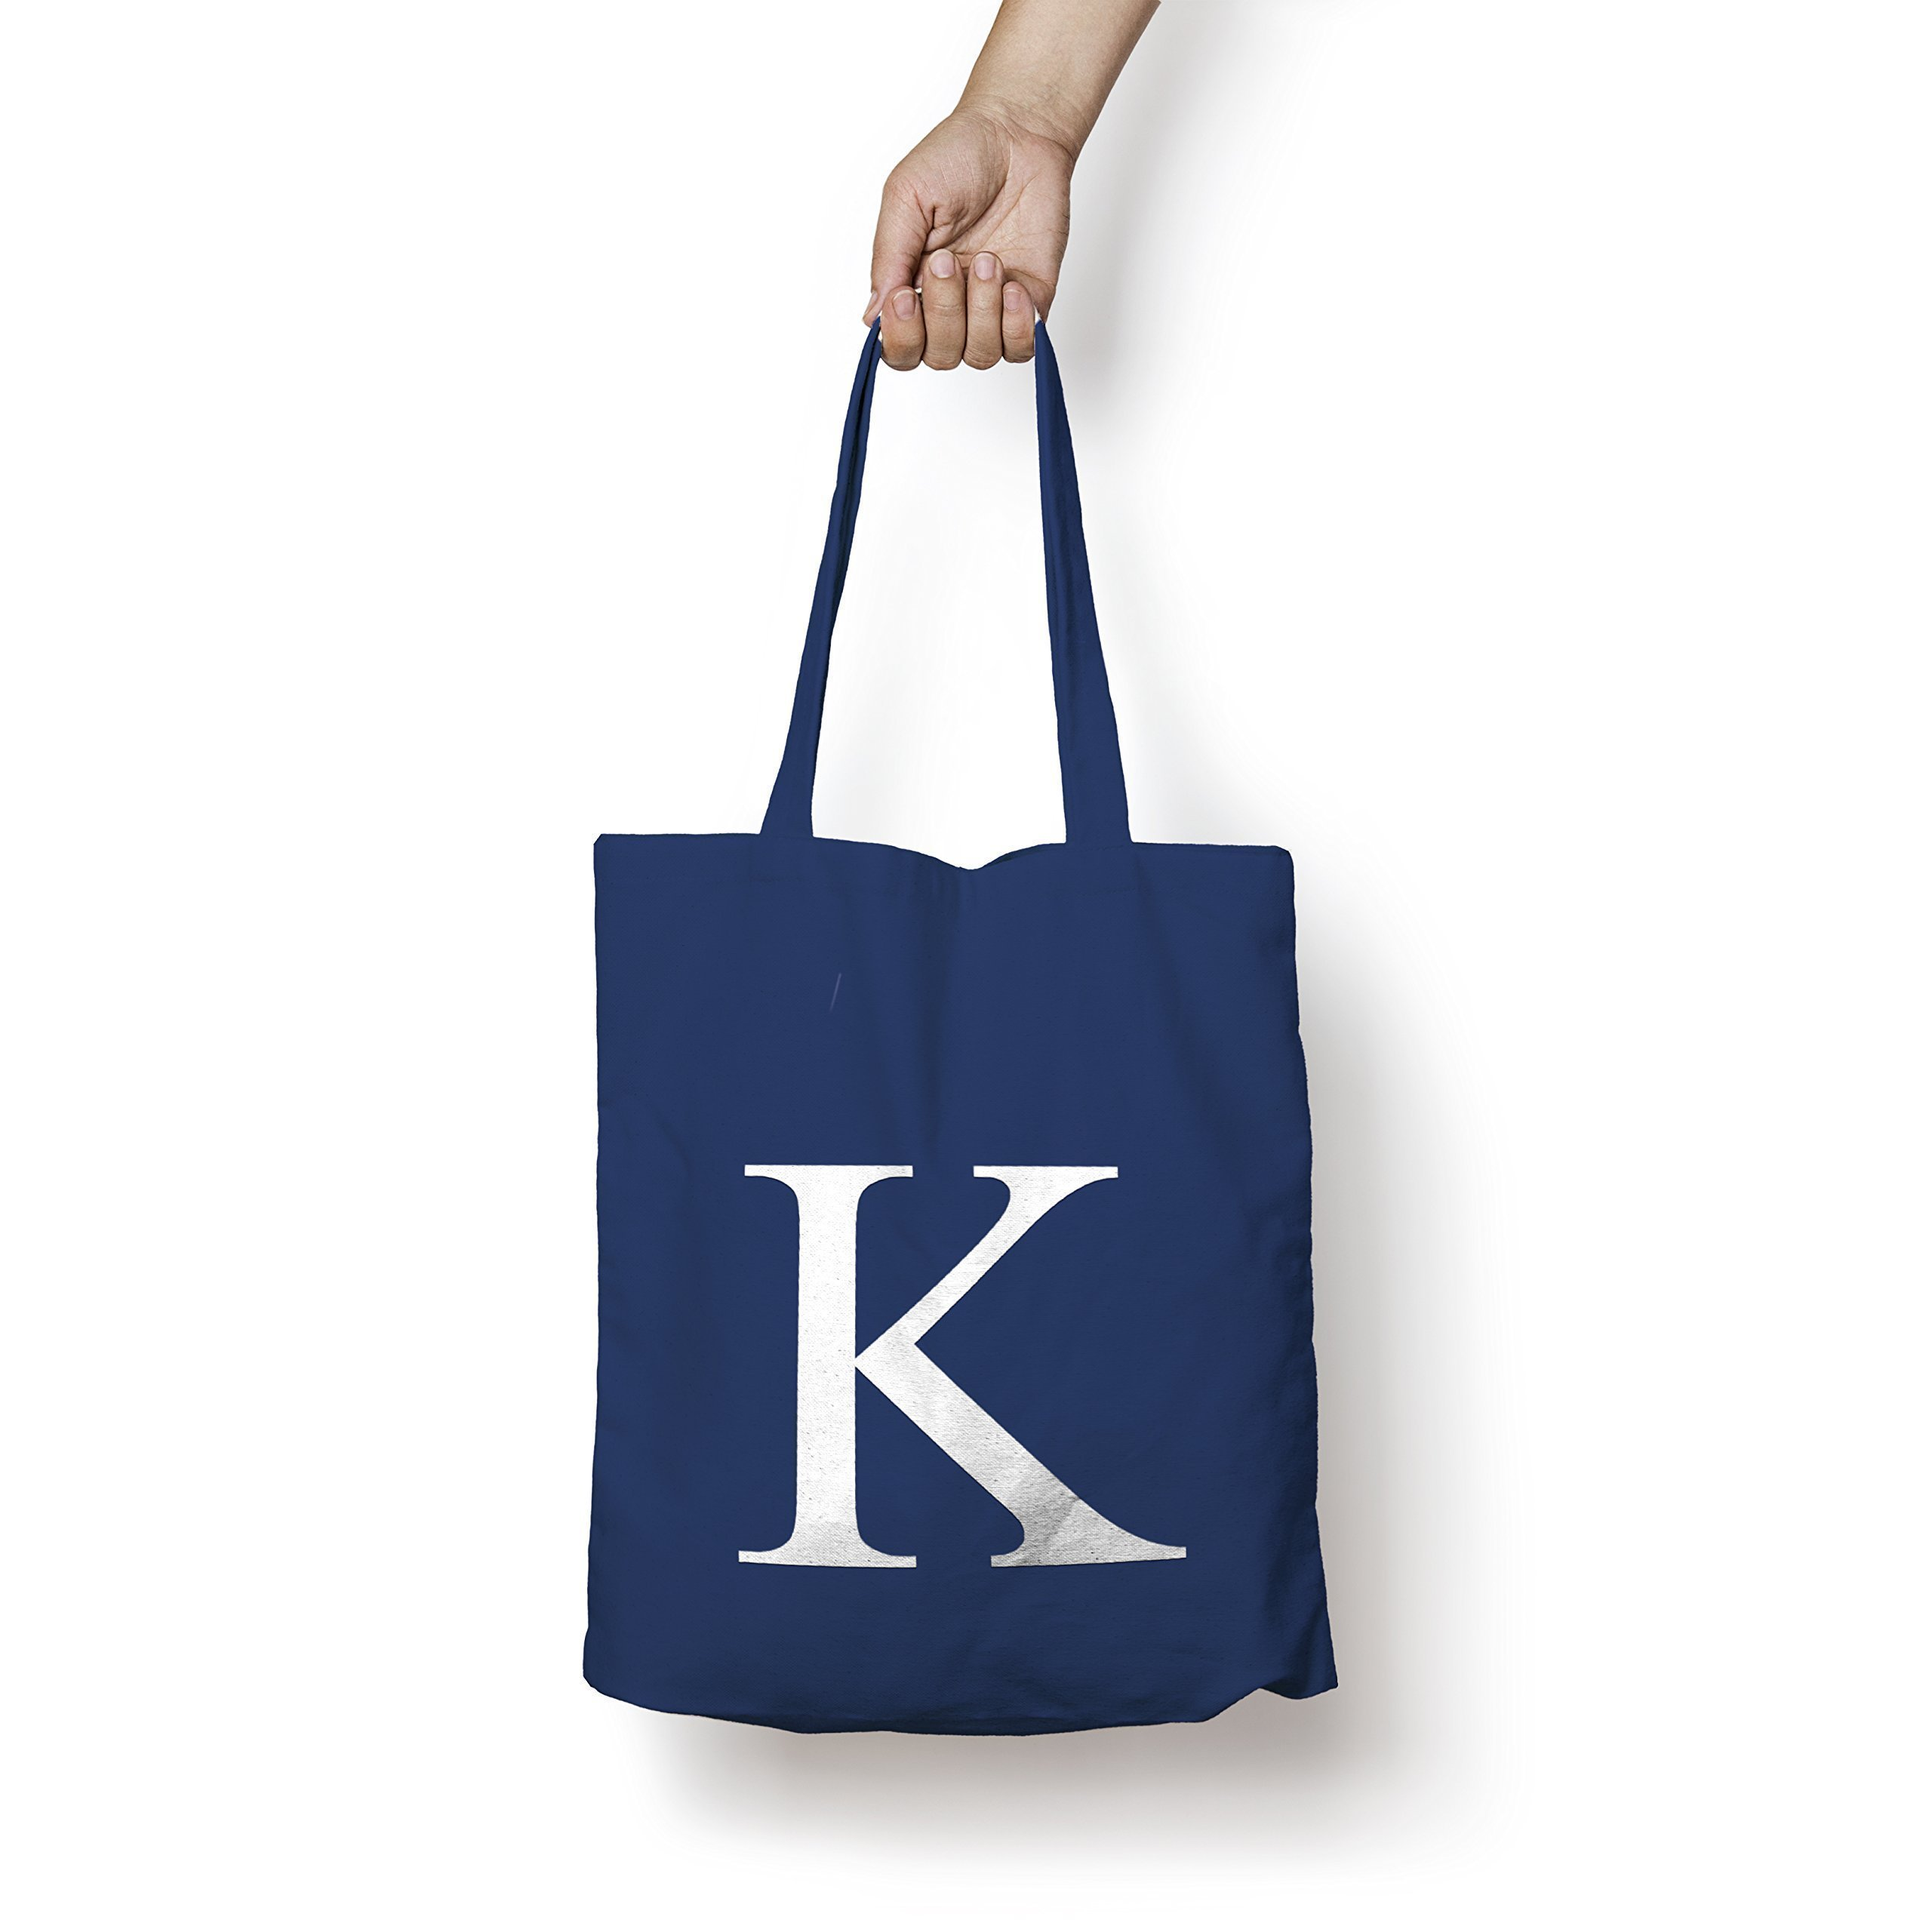 Personalised Tote Bag ANY LETTER Alphabet Printed Cotton Tote Shopper Bag - handmade-bags